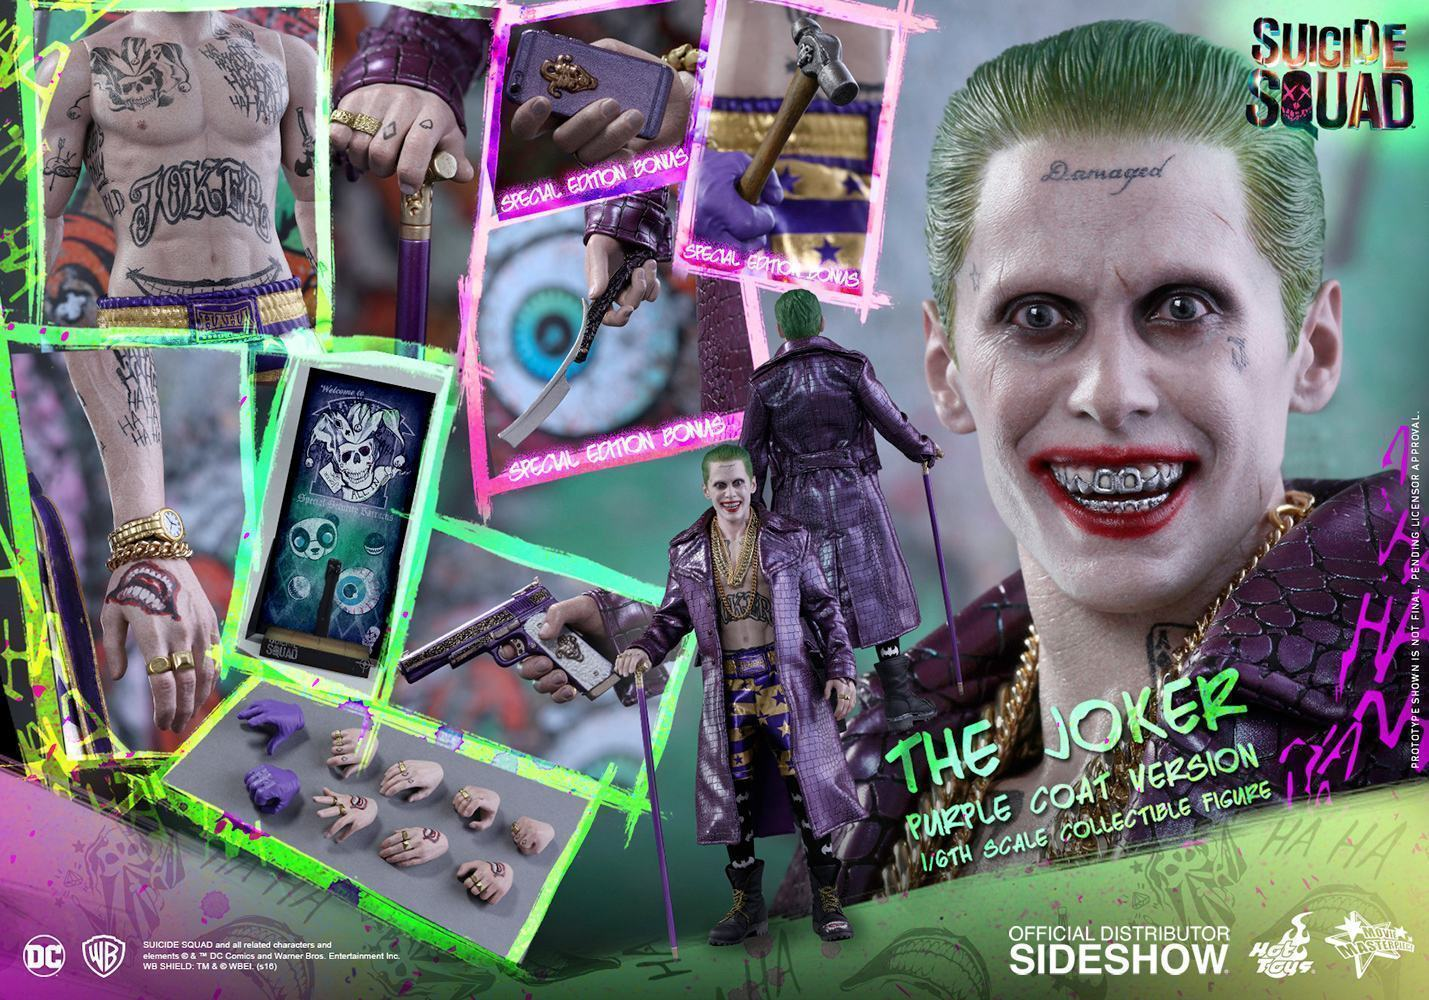 The-Joker-Purple-Coat-Ver-Suicide-Squad-Collectible-Figure-Hot-Toys-12